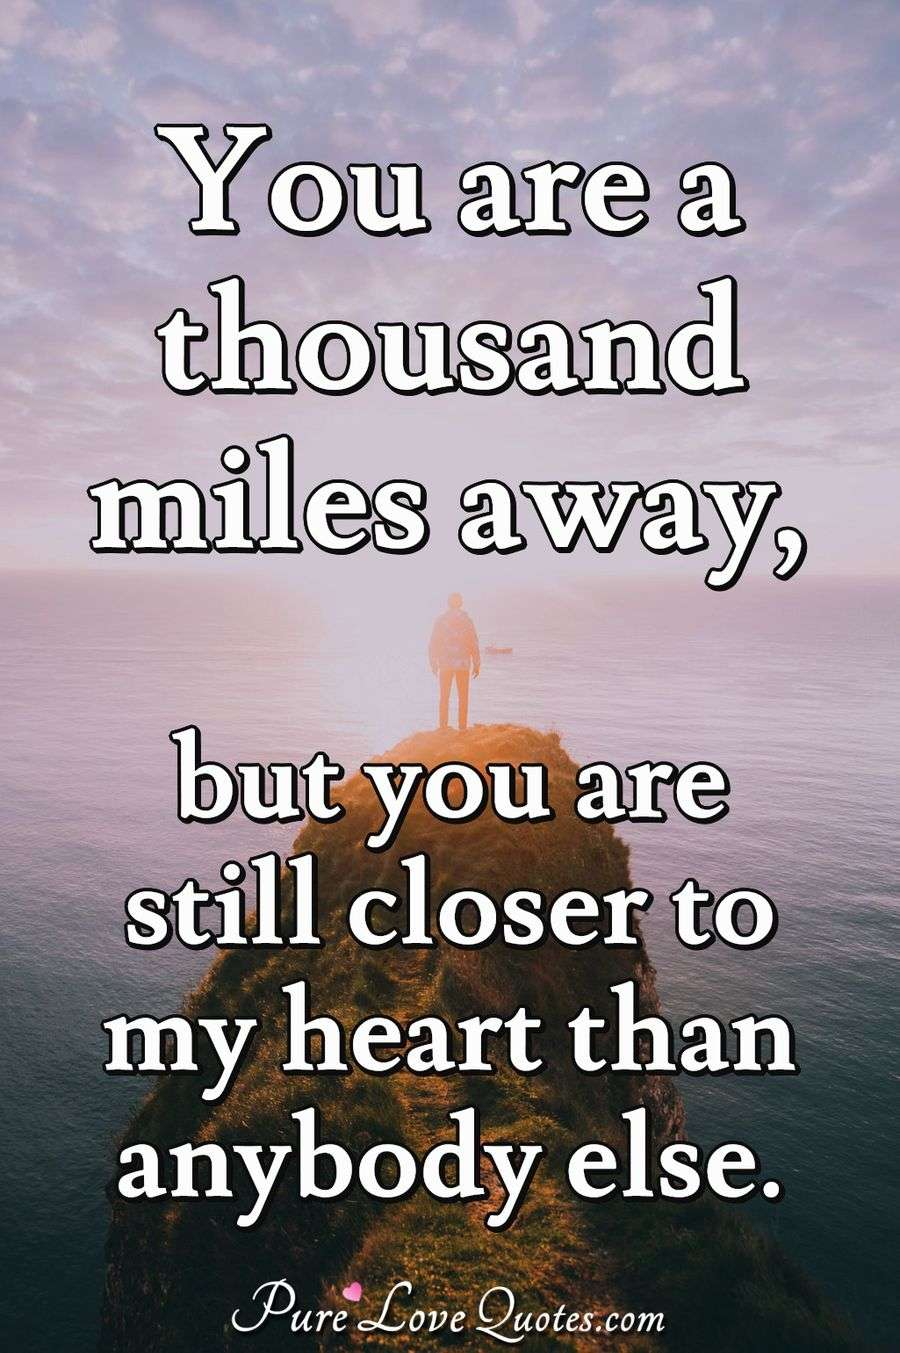 You are a thousand miles away, but you are still closer to my heart than anybody else. - Anonymous